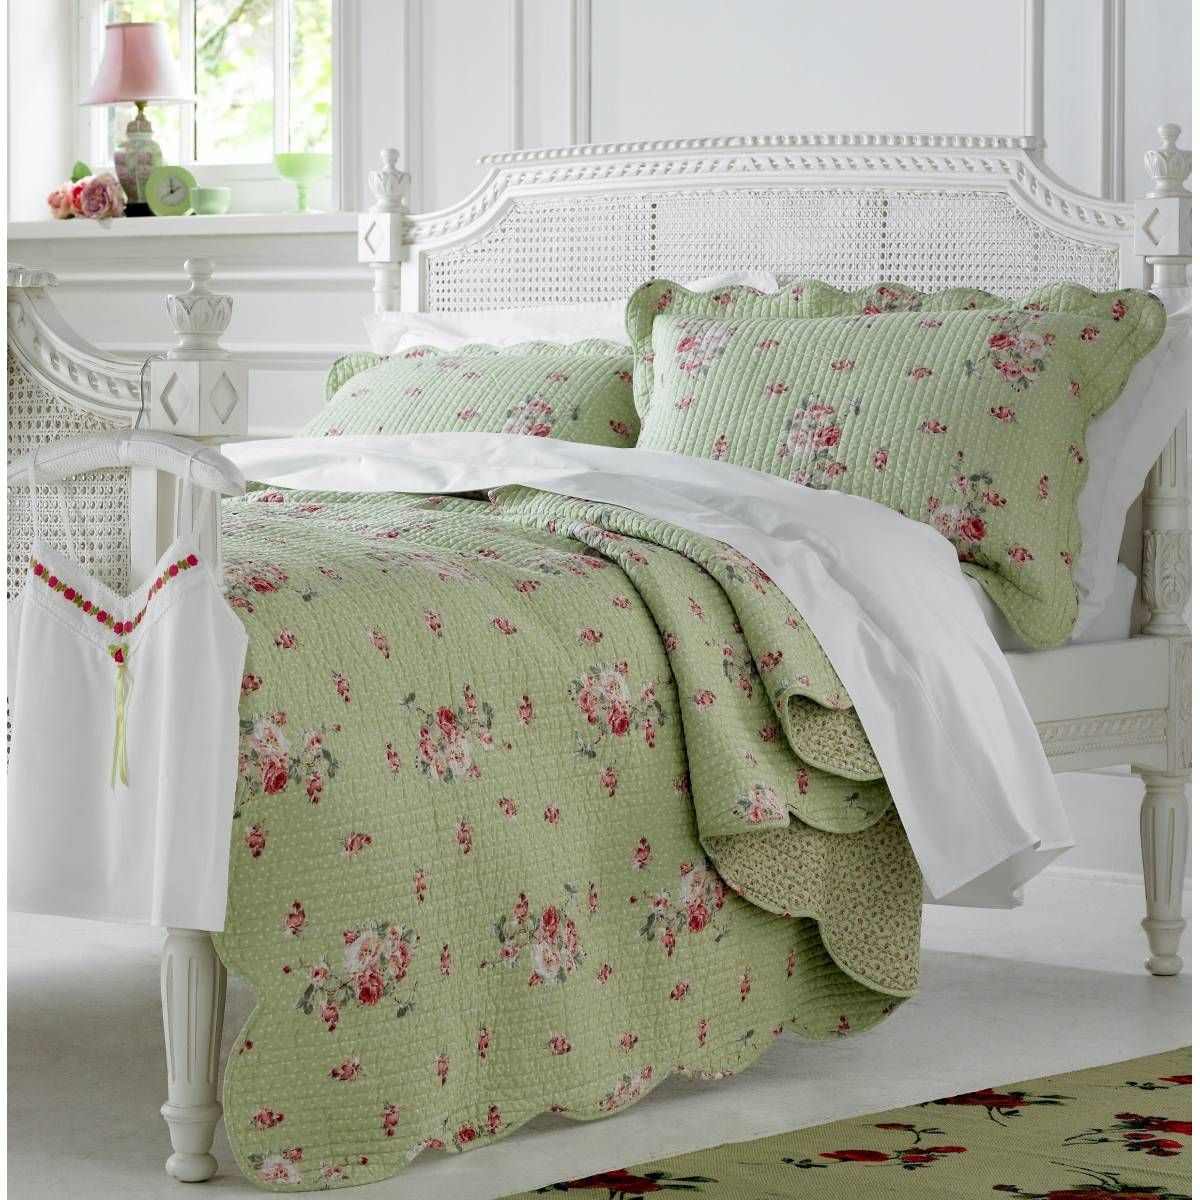 Green Bedspreads And Comforters Home Bedding Bedspreads Country Rose Bedspread Green